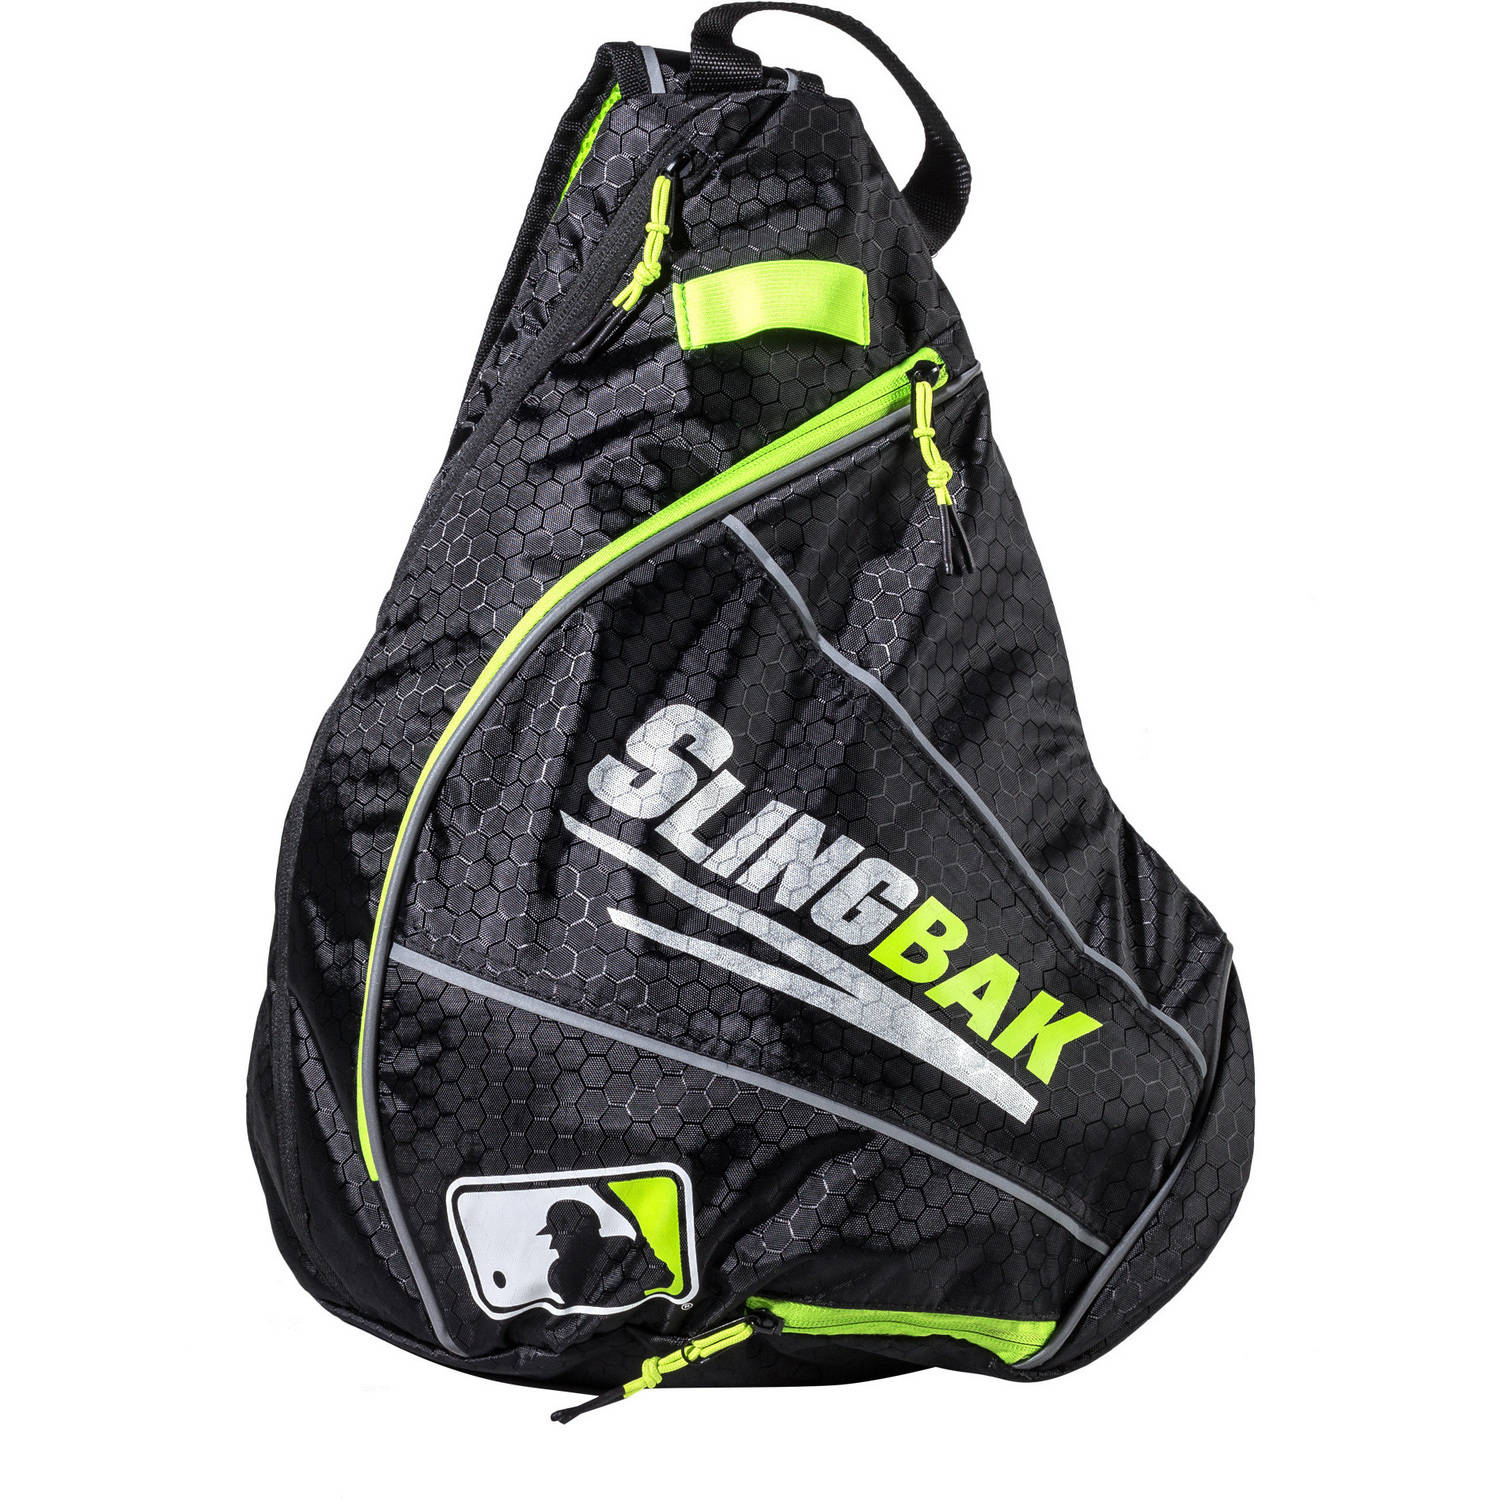 Franklin Sports MLB Slingbak Bag Compact Baseball /& T-Ball Equipment Carry Bag